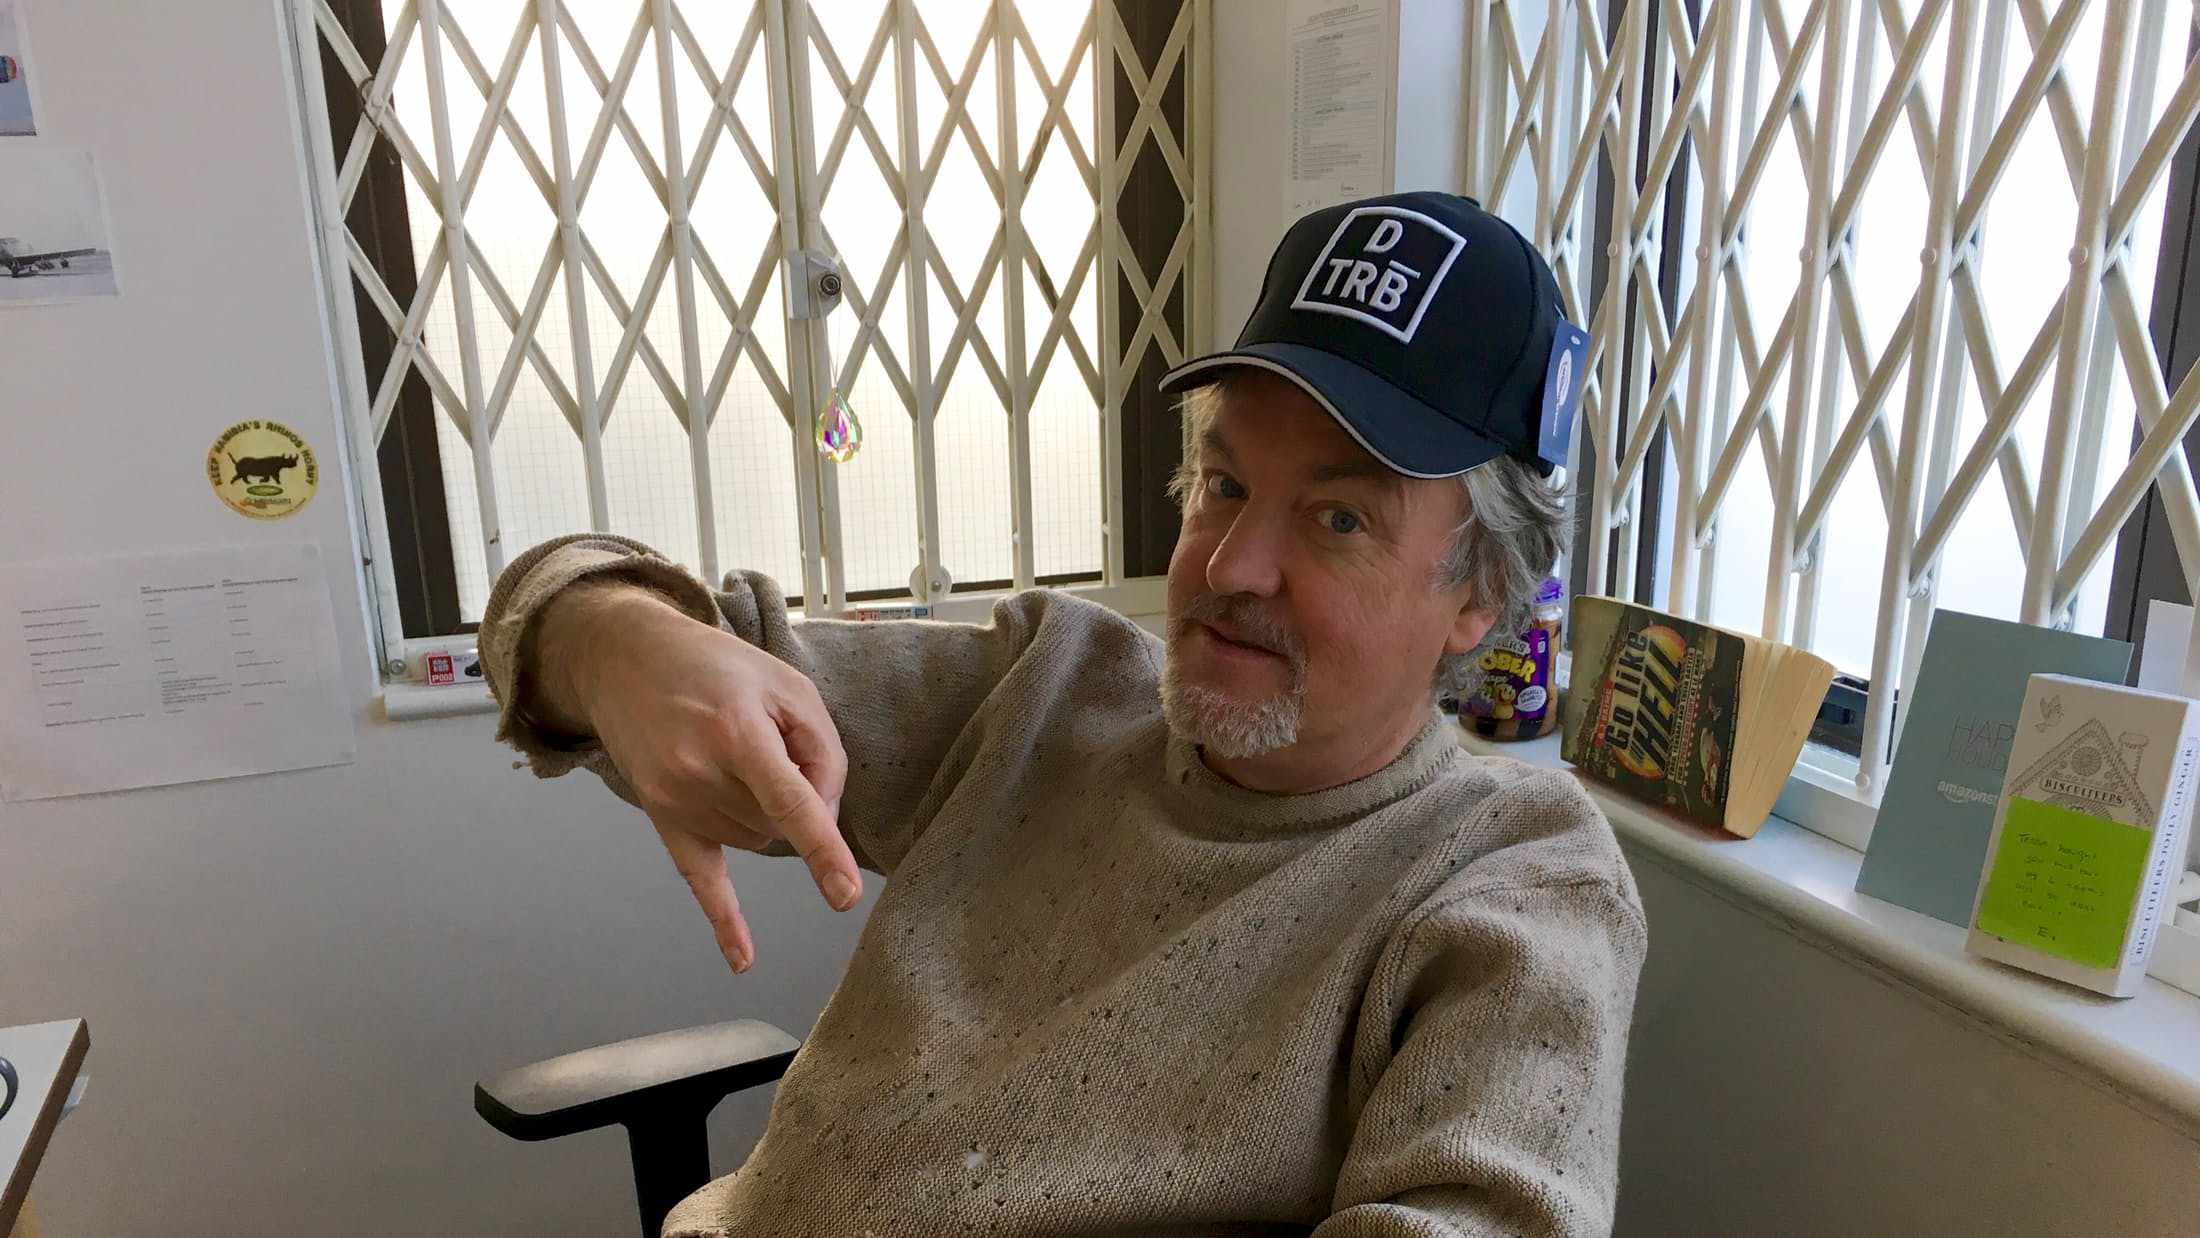 James May didn't choose the thug life...